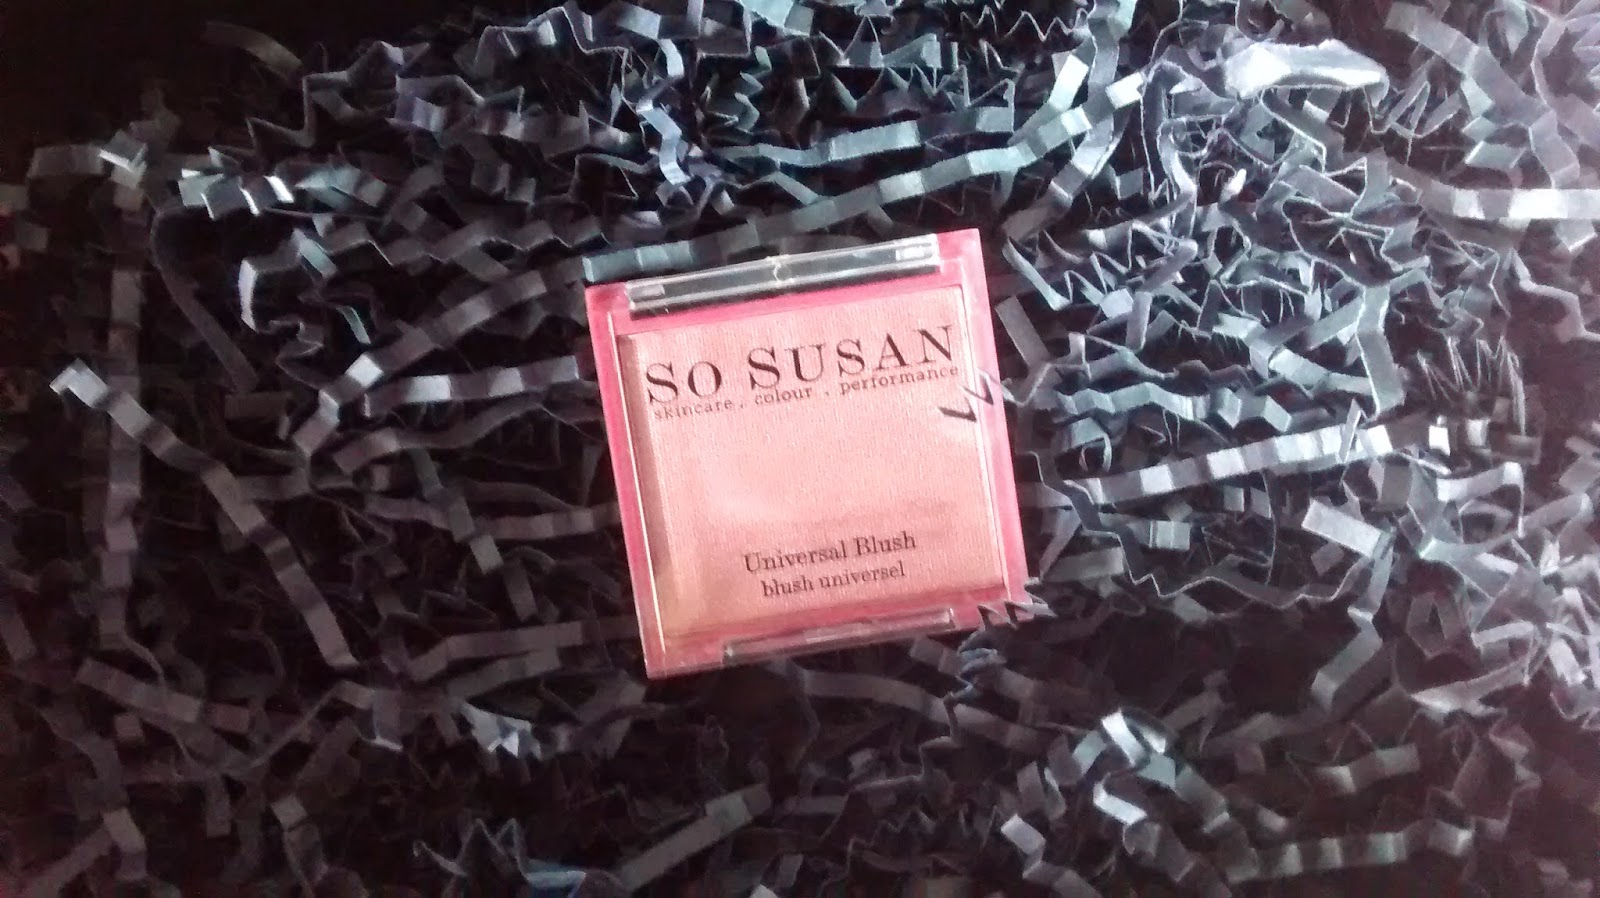 So Susan Cosmetics Universal Blush